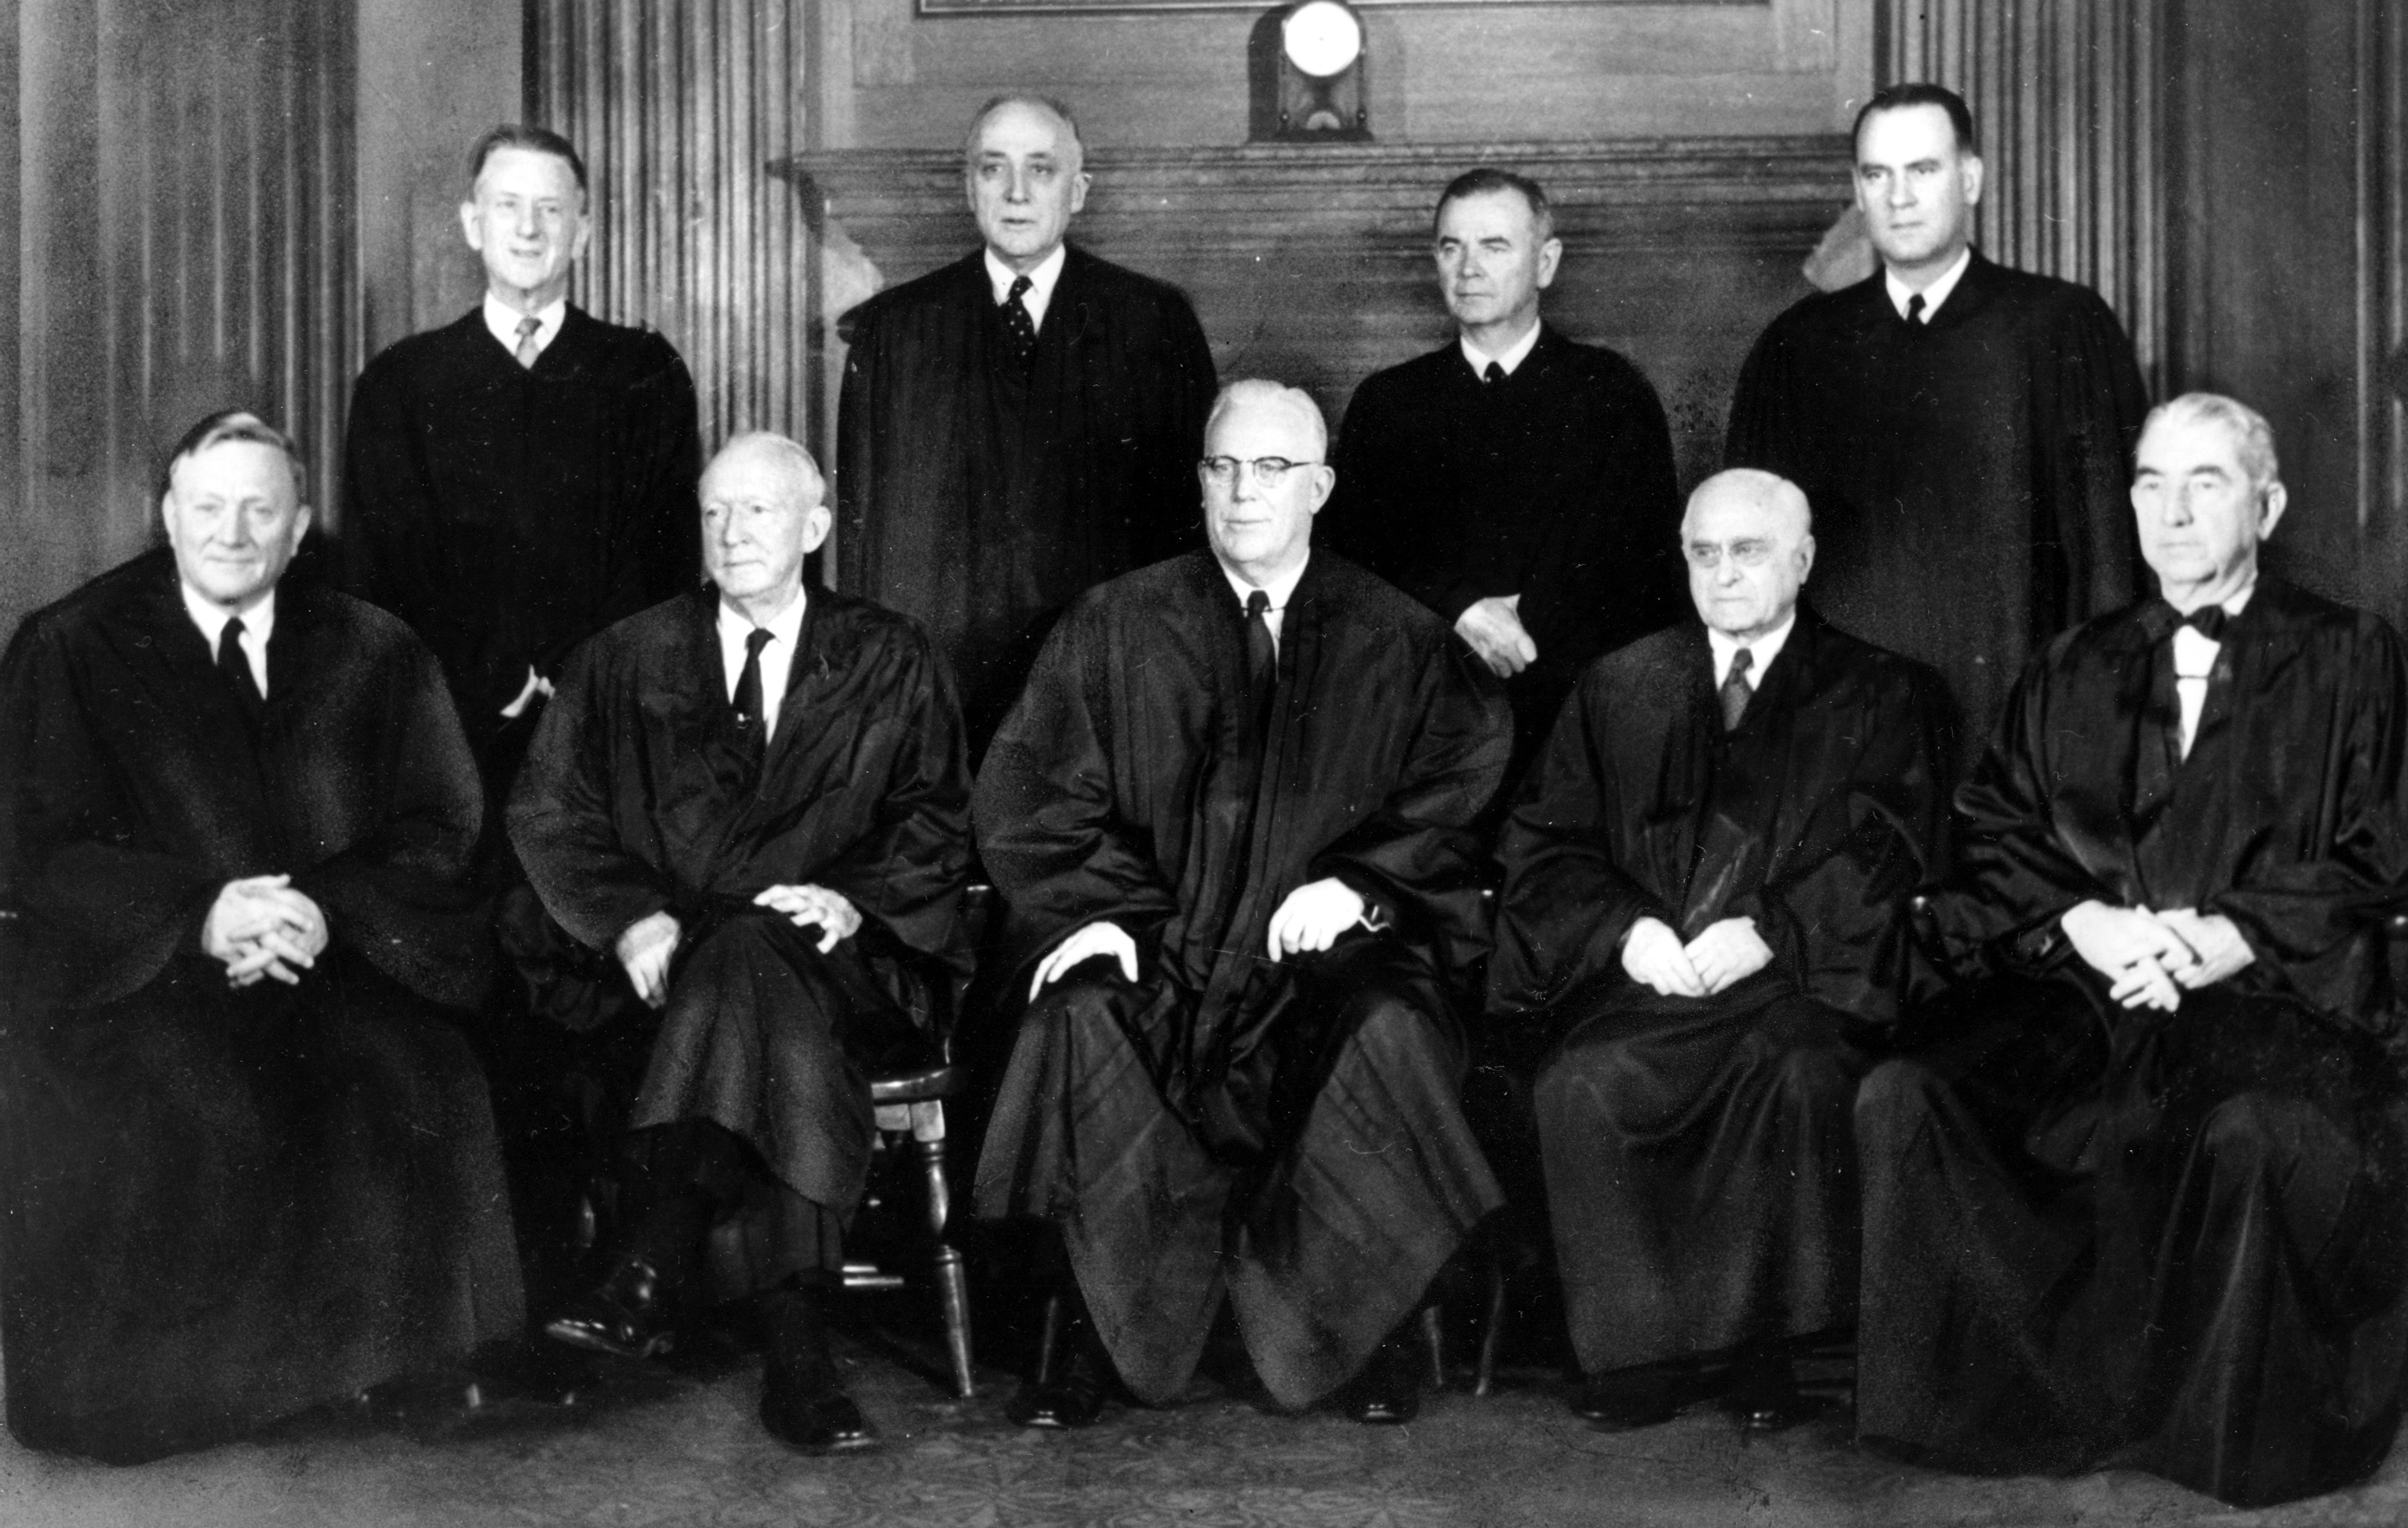 Justices Of The U S Supreme Court Pose For A Portrait In